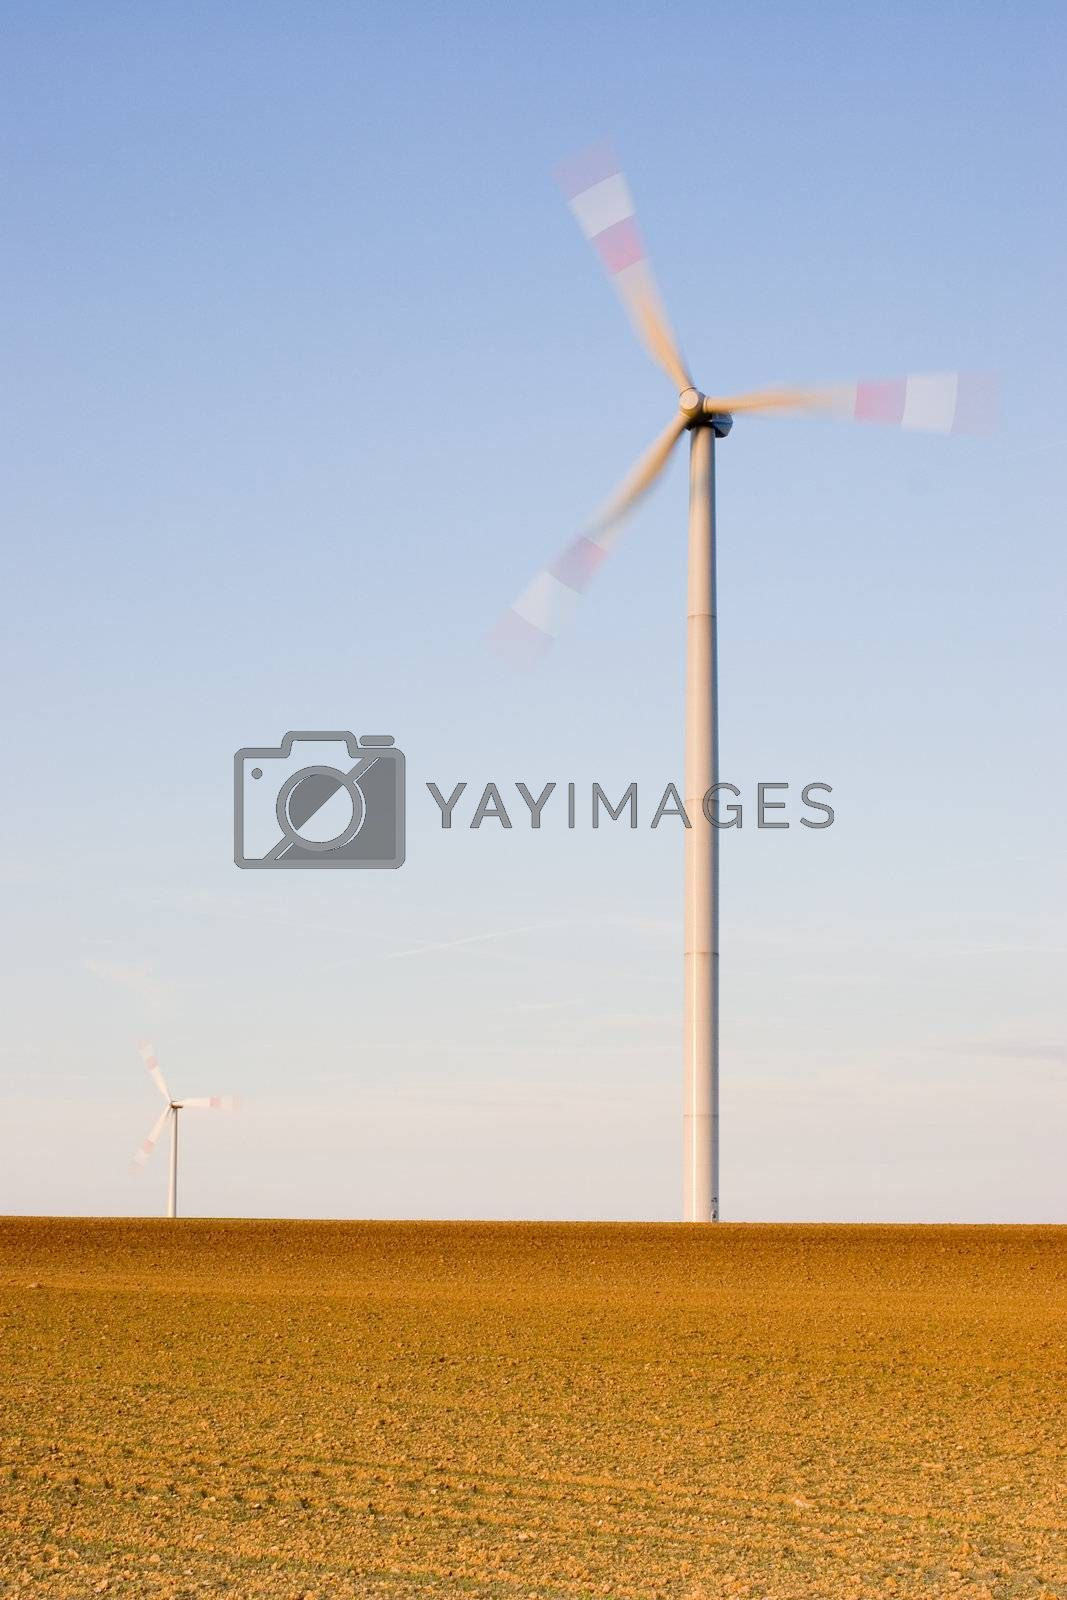 Two wind-turbine on a field at sunset. With long exposure time for motion blurred propellers of the wind-turbines.